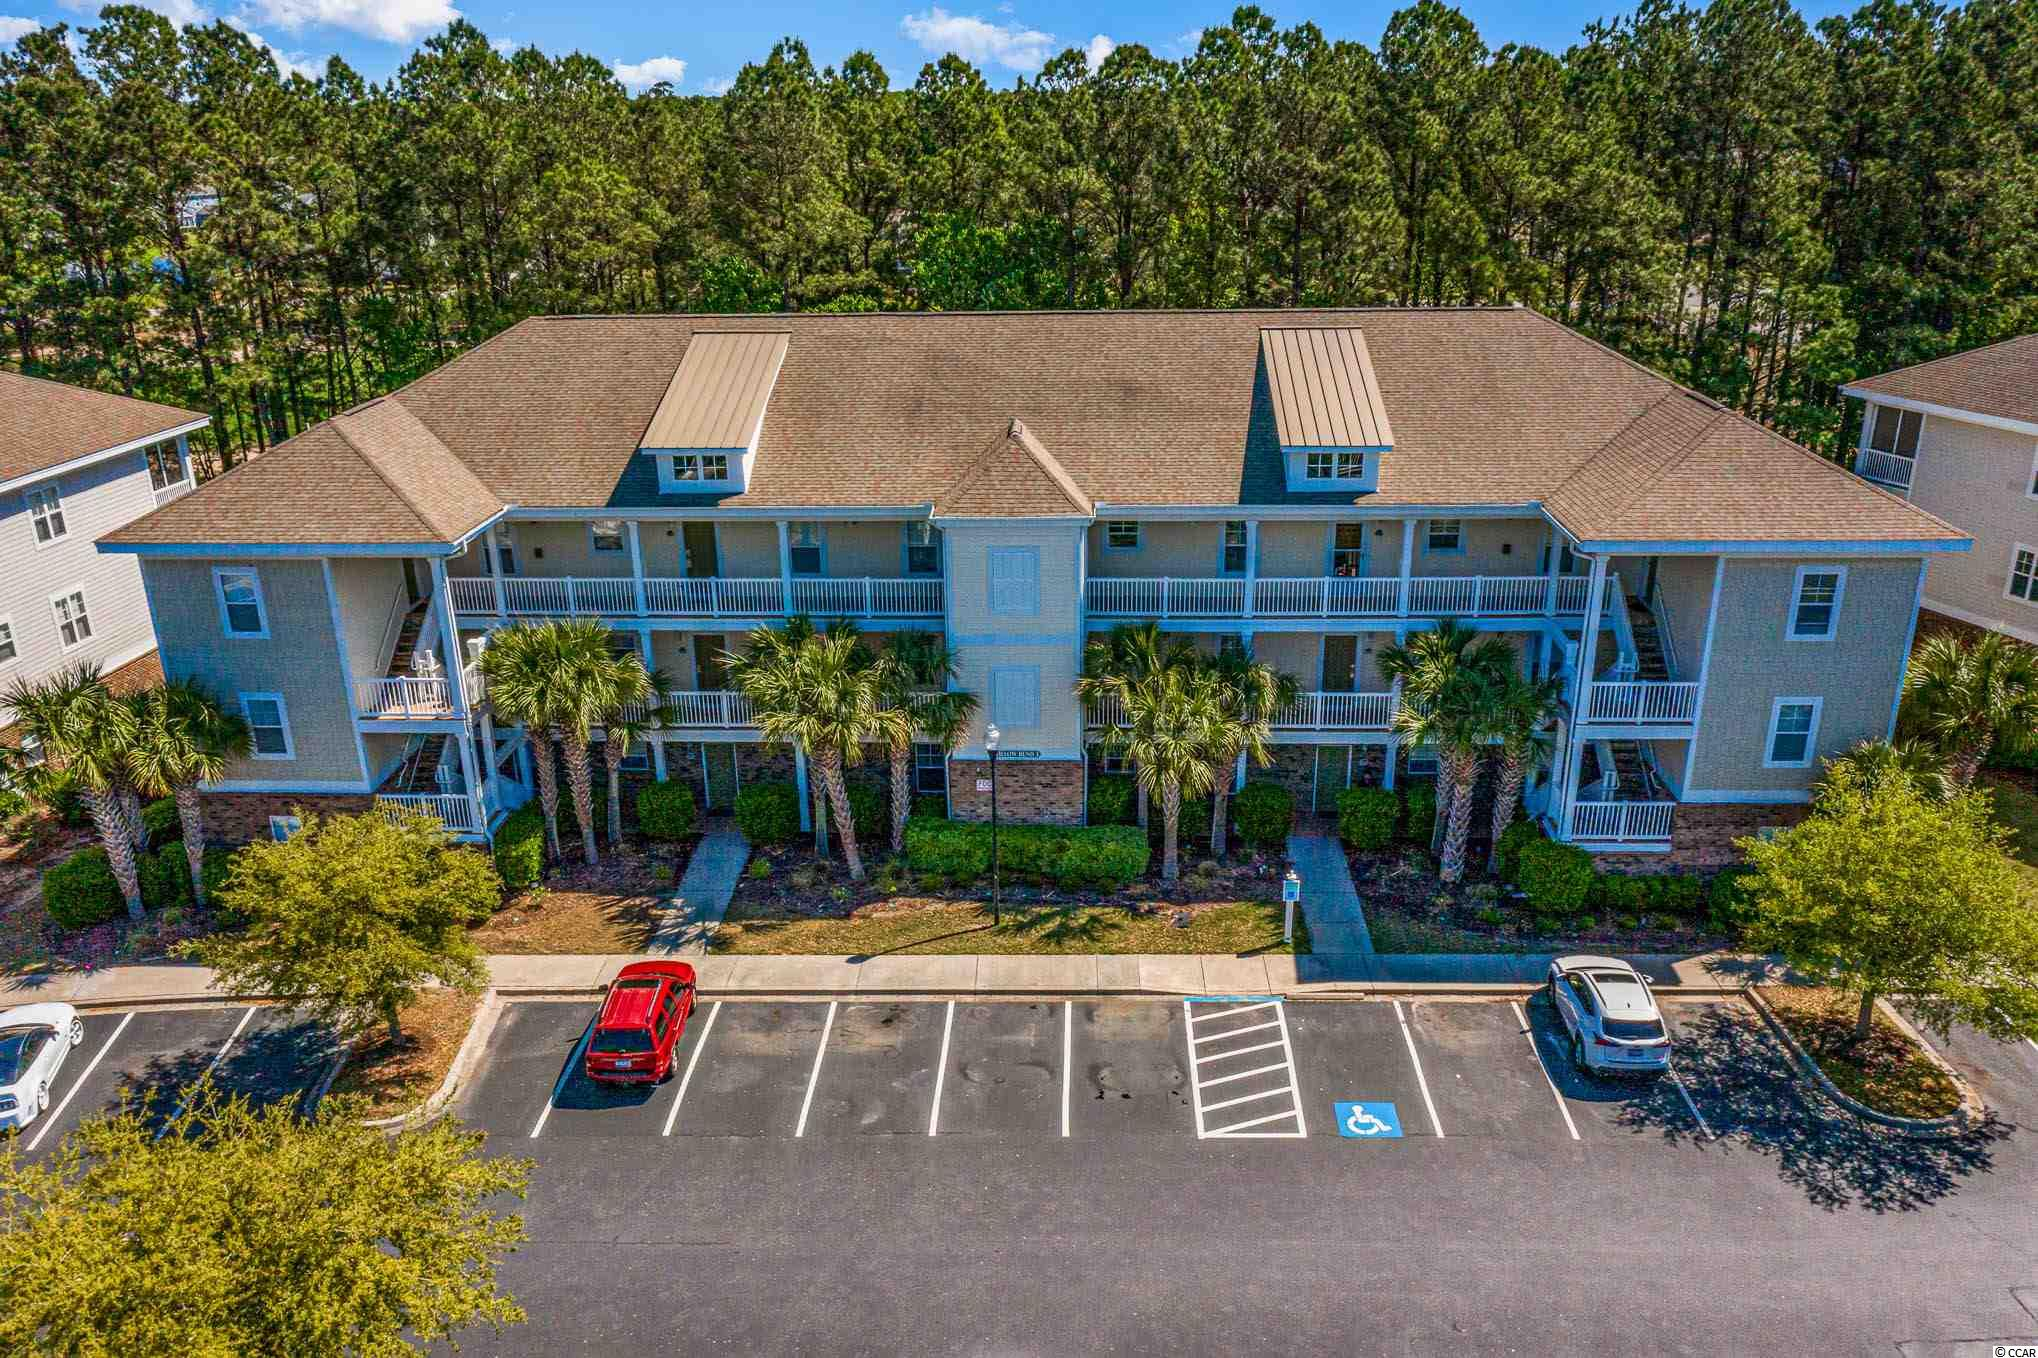 Look no further as your own personal piece of PARADISE awaits you in this top floor, charming and stunning 2BR/2BA golf villa! This villa is located on the Norman golf course in Willow Bend of the popular Barefoot Resort and Golf in North Myrtle Beach! Step right into this lovely unit and you'll notice the bright & cheery open floor concept as your kitchen opens up to the living/dining room combo and vaulted ceilings in the living area. Look at that beautiful accented tray ceiling in your master bedroom! The master bedroom includes two spacious closets and a master bath. You have a full second bedroom and bathroom for your guests. Enjoy your morning coffee or afternoon beverage of choice on your screened in porch, which has a storage unit. This unit comes FULLY FURNISHED minus a few personal items, silverware and bedding that do not convey. A laundry room with washer/dryer included as well. The owners have completed some wonderful upgrades to really give this villa character and the modern flare of today! Some of those include the gorgeous granite countertops, stainless steel appliances, a new storm door, luxury vinyl flooring throughout the living/dining room, freshly painted throughout, 2 new sofas(one a queen size pull out bed), new mattresses in both bedrooms(new queen bed in second bedroom), new ceiling fans in bedrooms, had porch screened in, and hot water heater is only two years old! Willow Bend has extra parking for your guests, and a private pool, which is a pleasant alternative to the beach. Speaking of heading to the beach, it's just a short ride down to your very own private oceanfront cabana with a gated parking lot only accessible to the Barefoot owners! There is currently a new cabana that is under construction targeted completion sometime in 2021! The gated and monitored parking lots are still available to you now! There is also a free shuttle bus ride to and from the beach as well. Enjoy maintenance free living as your HOA fee in Willow Bend covers